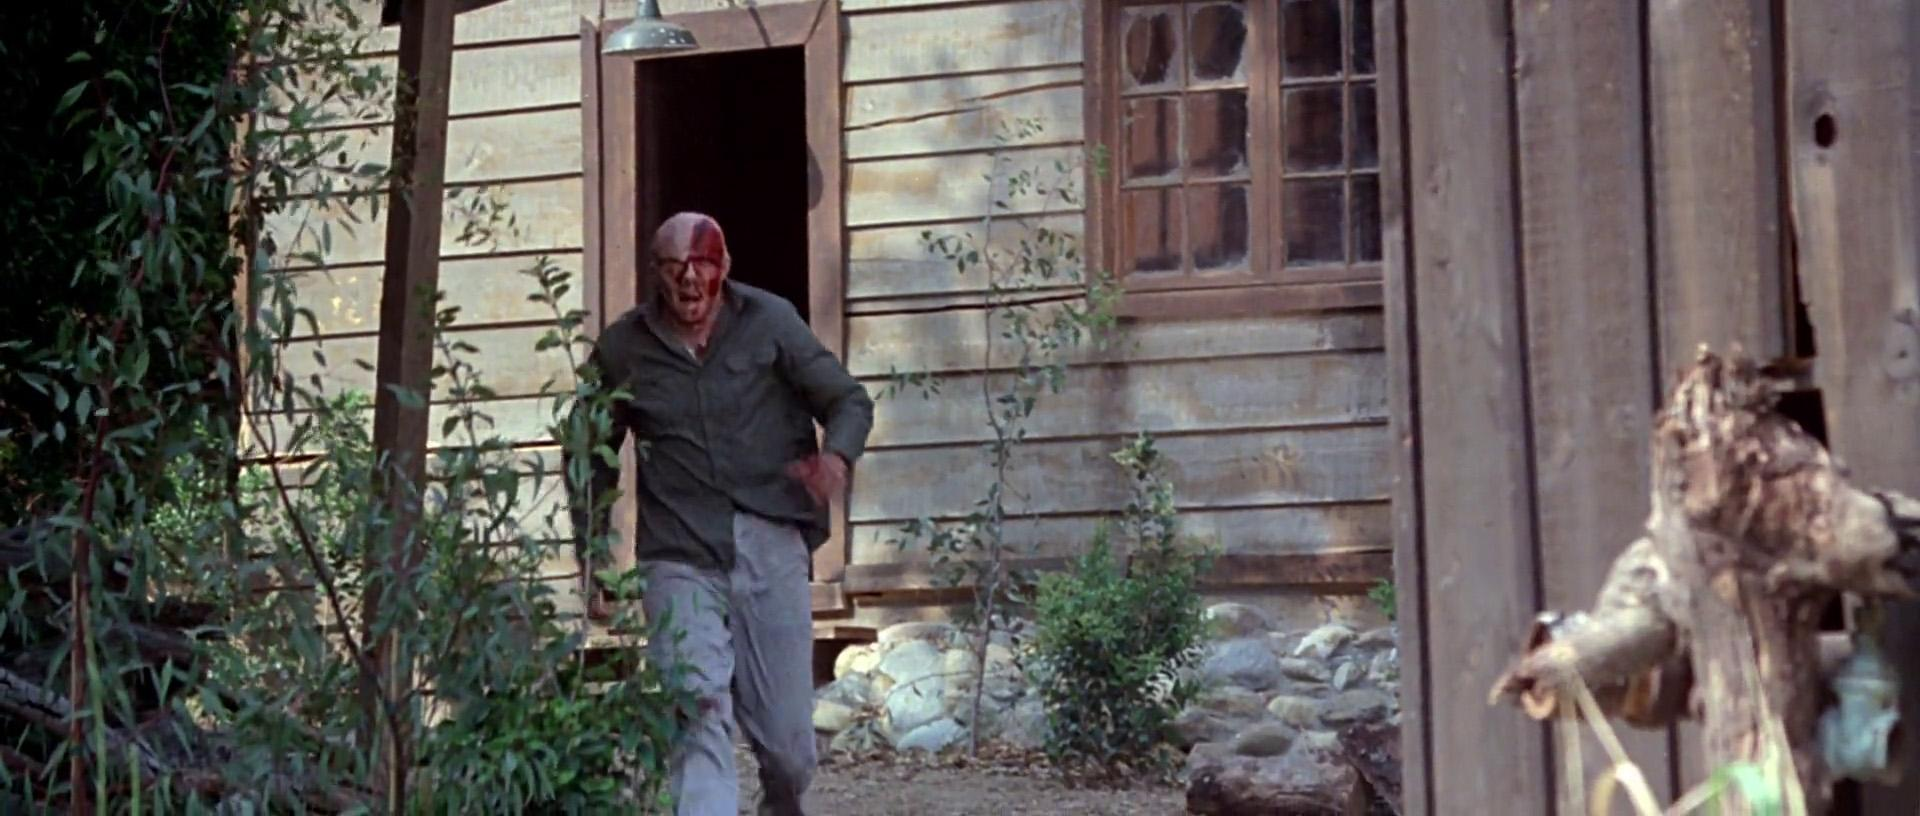 Richard Brooker in Friday the 13th Part III (1982)